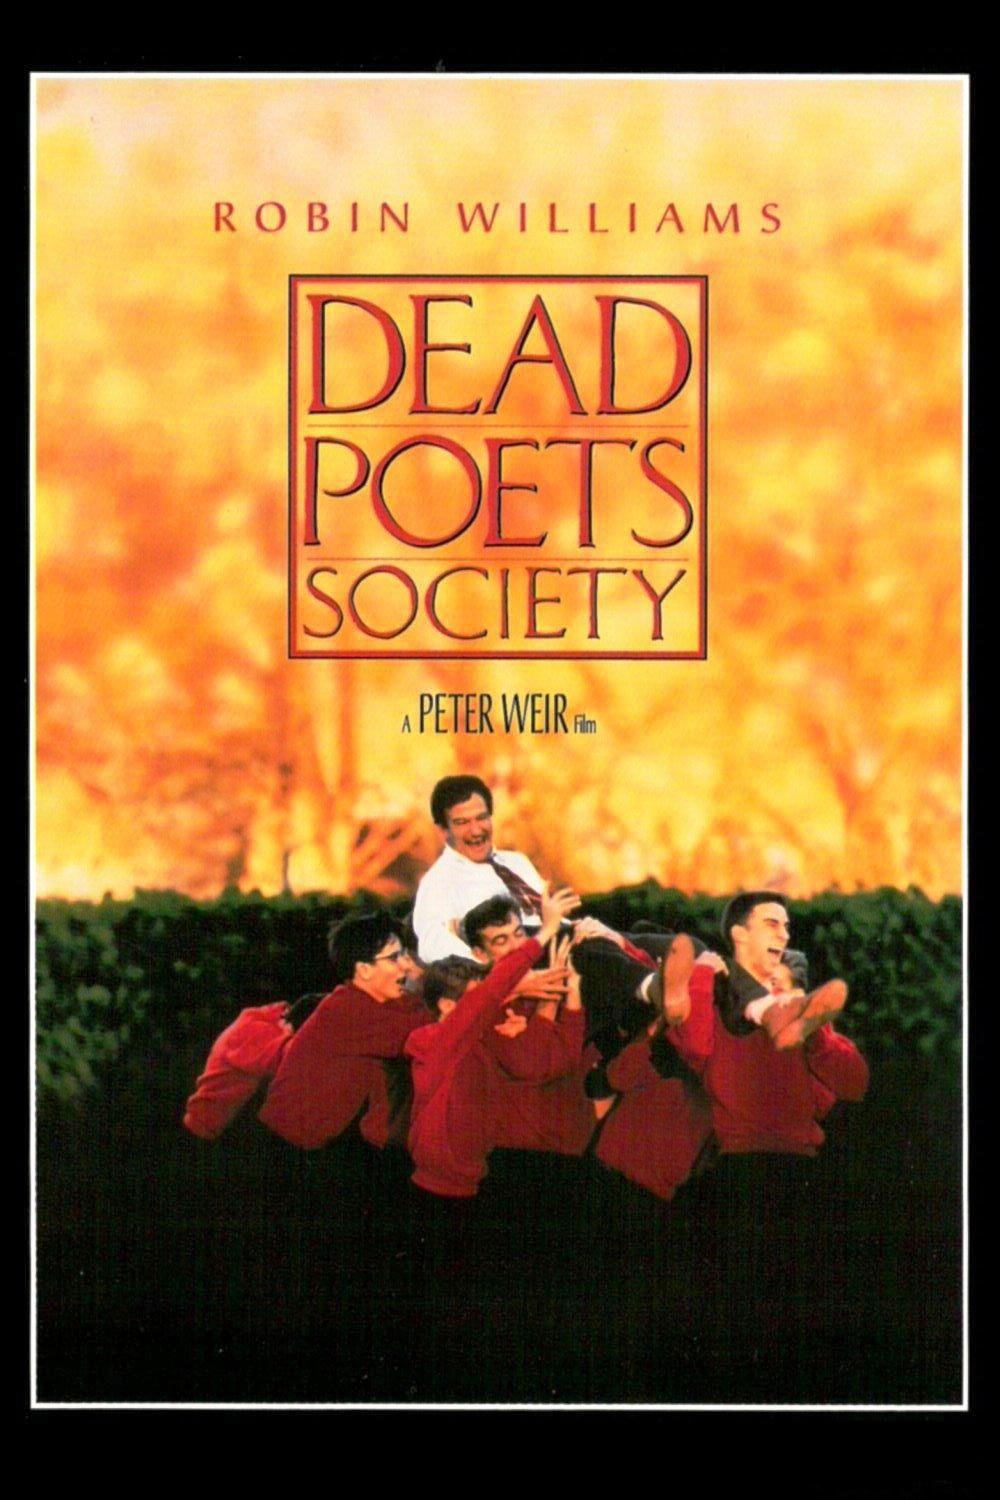 My Analysis of Dead Poet's Society